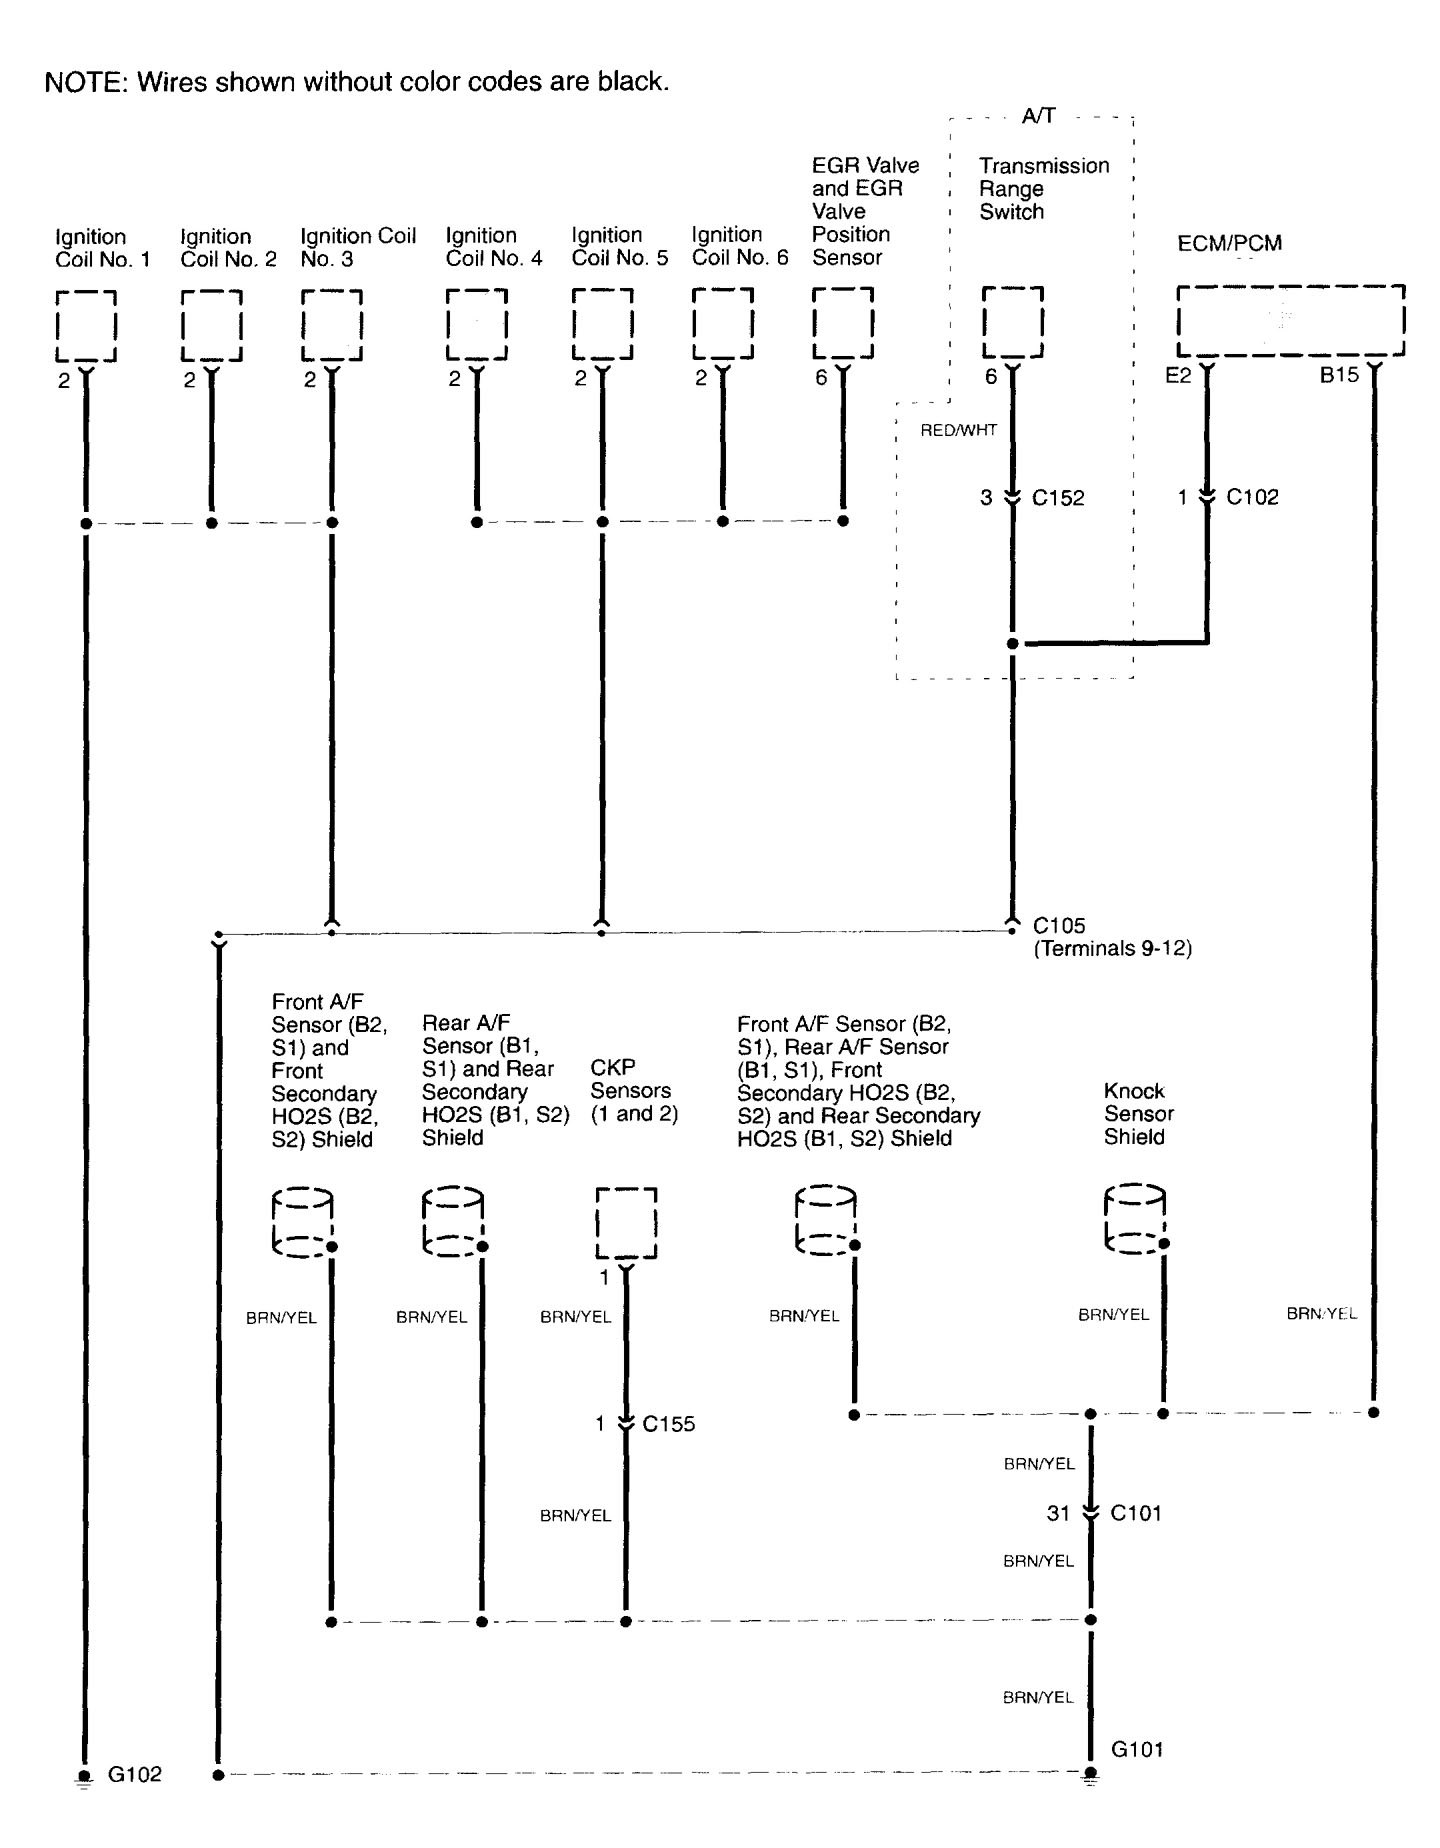 acura tl wiring diagram ground distribution v1 1 2003 2003 acura cl diagram 2003 acura cl stereo wiring diagram \u2022 free Ignition Coil Wiring at webbmarketing.co